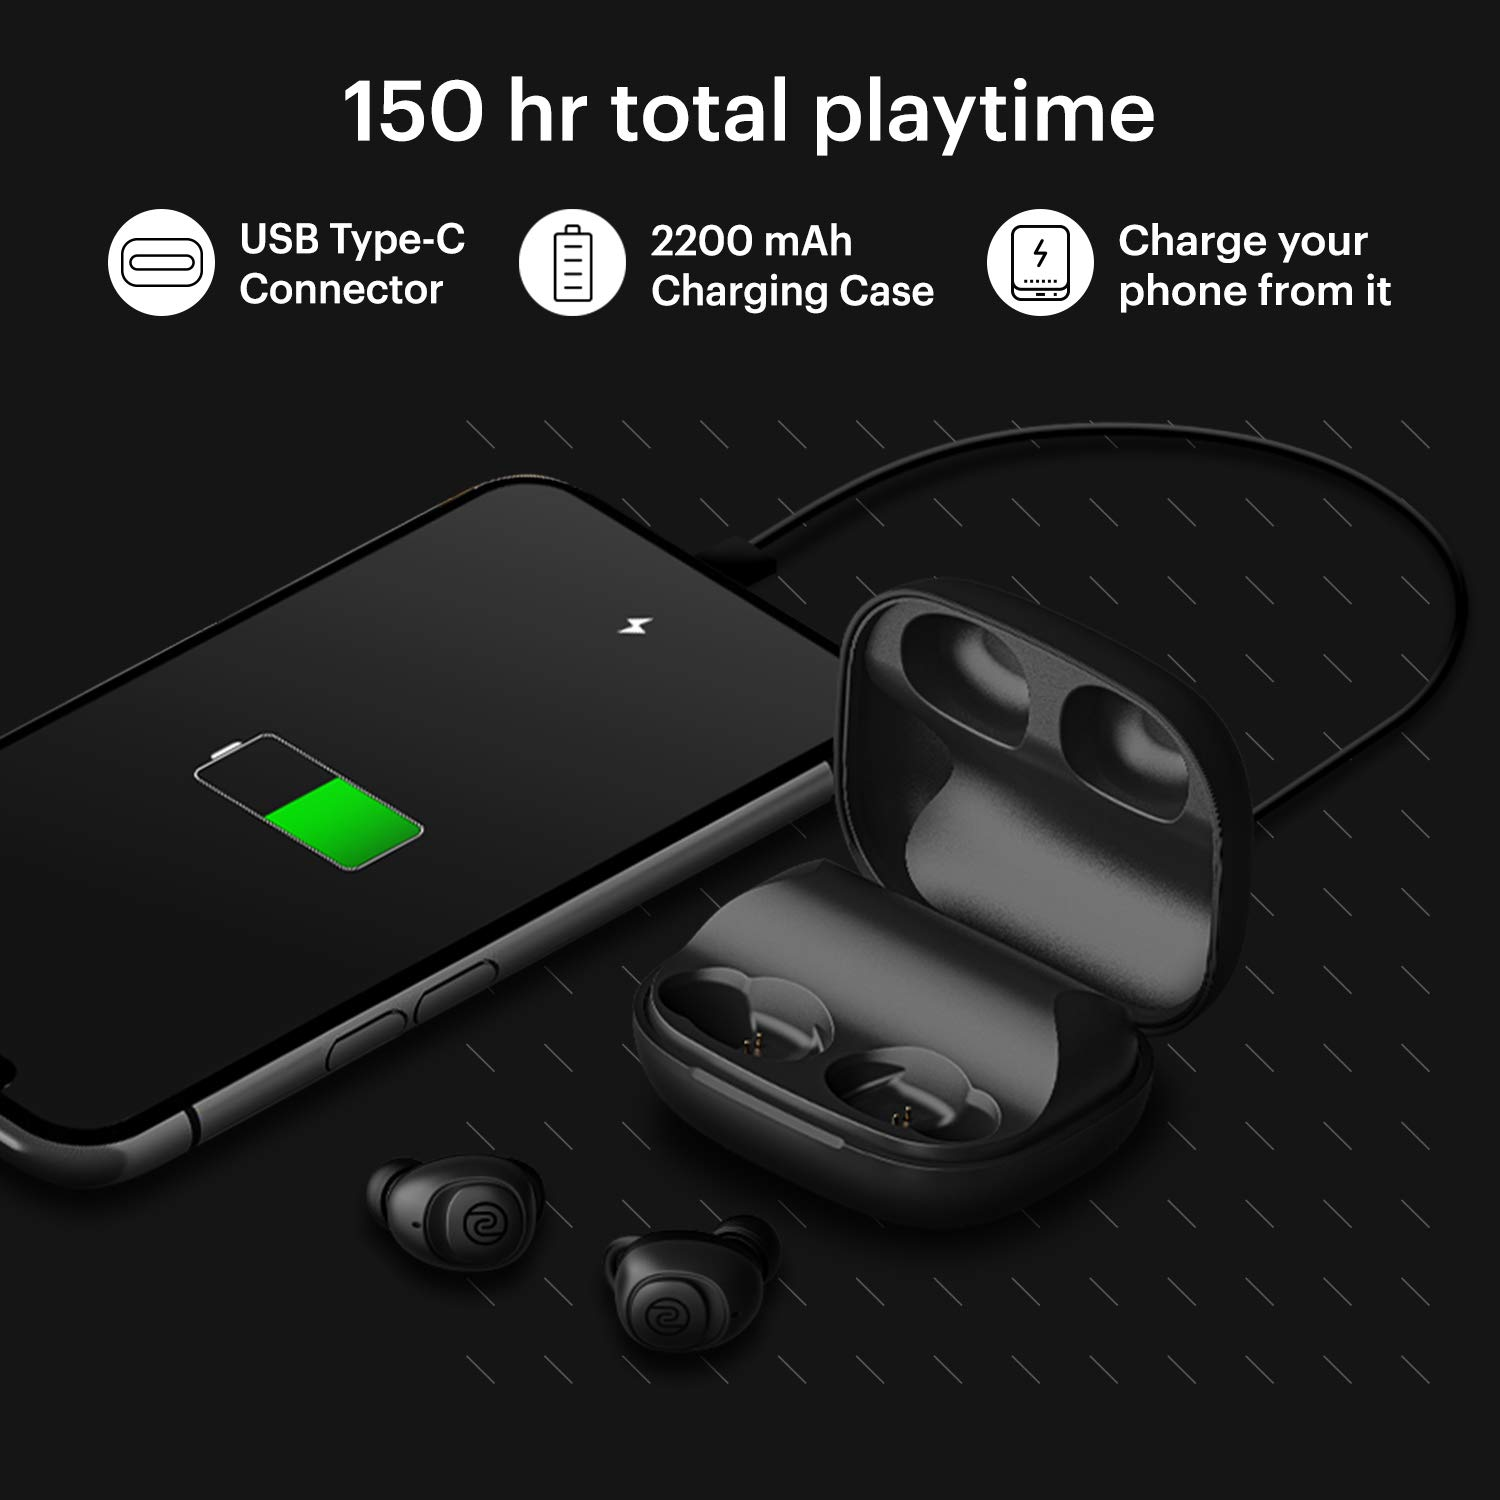 Noise Shots X5 PRO Bluetooth Truly Wireless Earbuds, 150 Hrs Playback with Qualcomm AptX and in-Built Powerbank for Reverse Charging